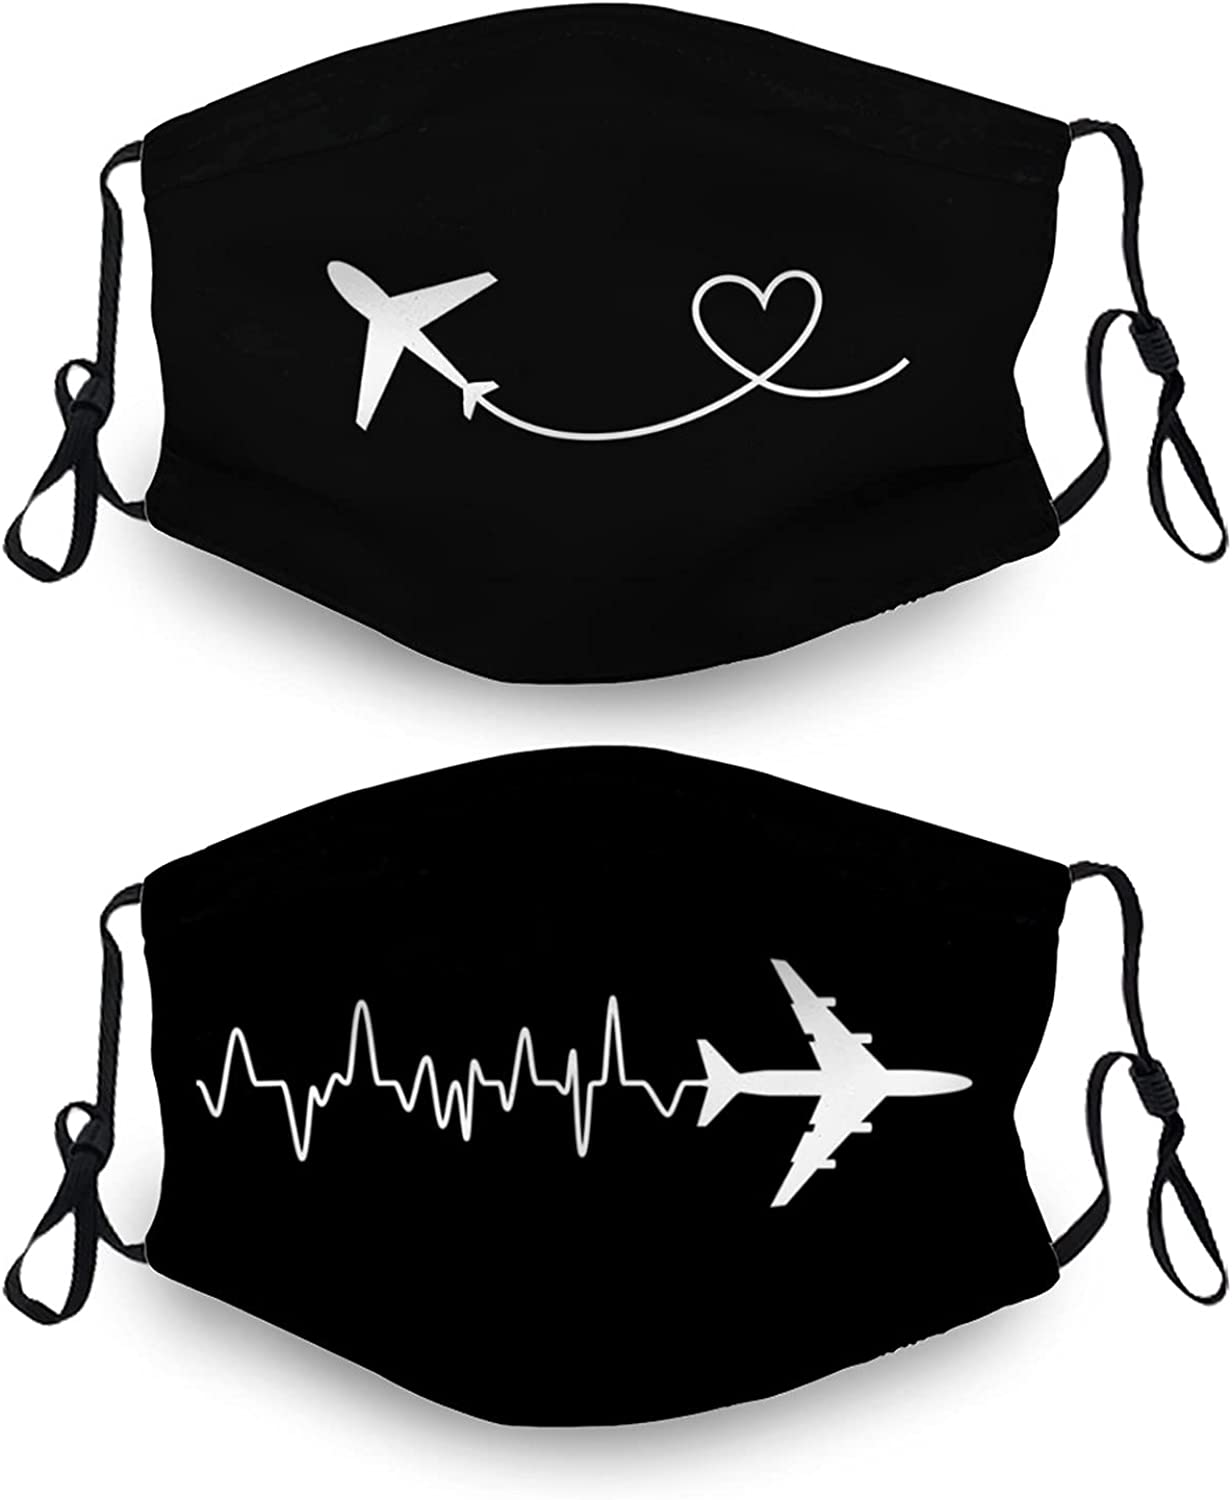 Airplane Mouth Cover with 4 Filter, Breathable-Adjustable Filters Mask Balaclava for Men Women & Teenager